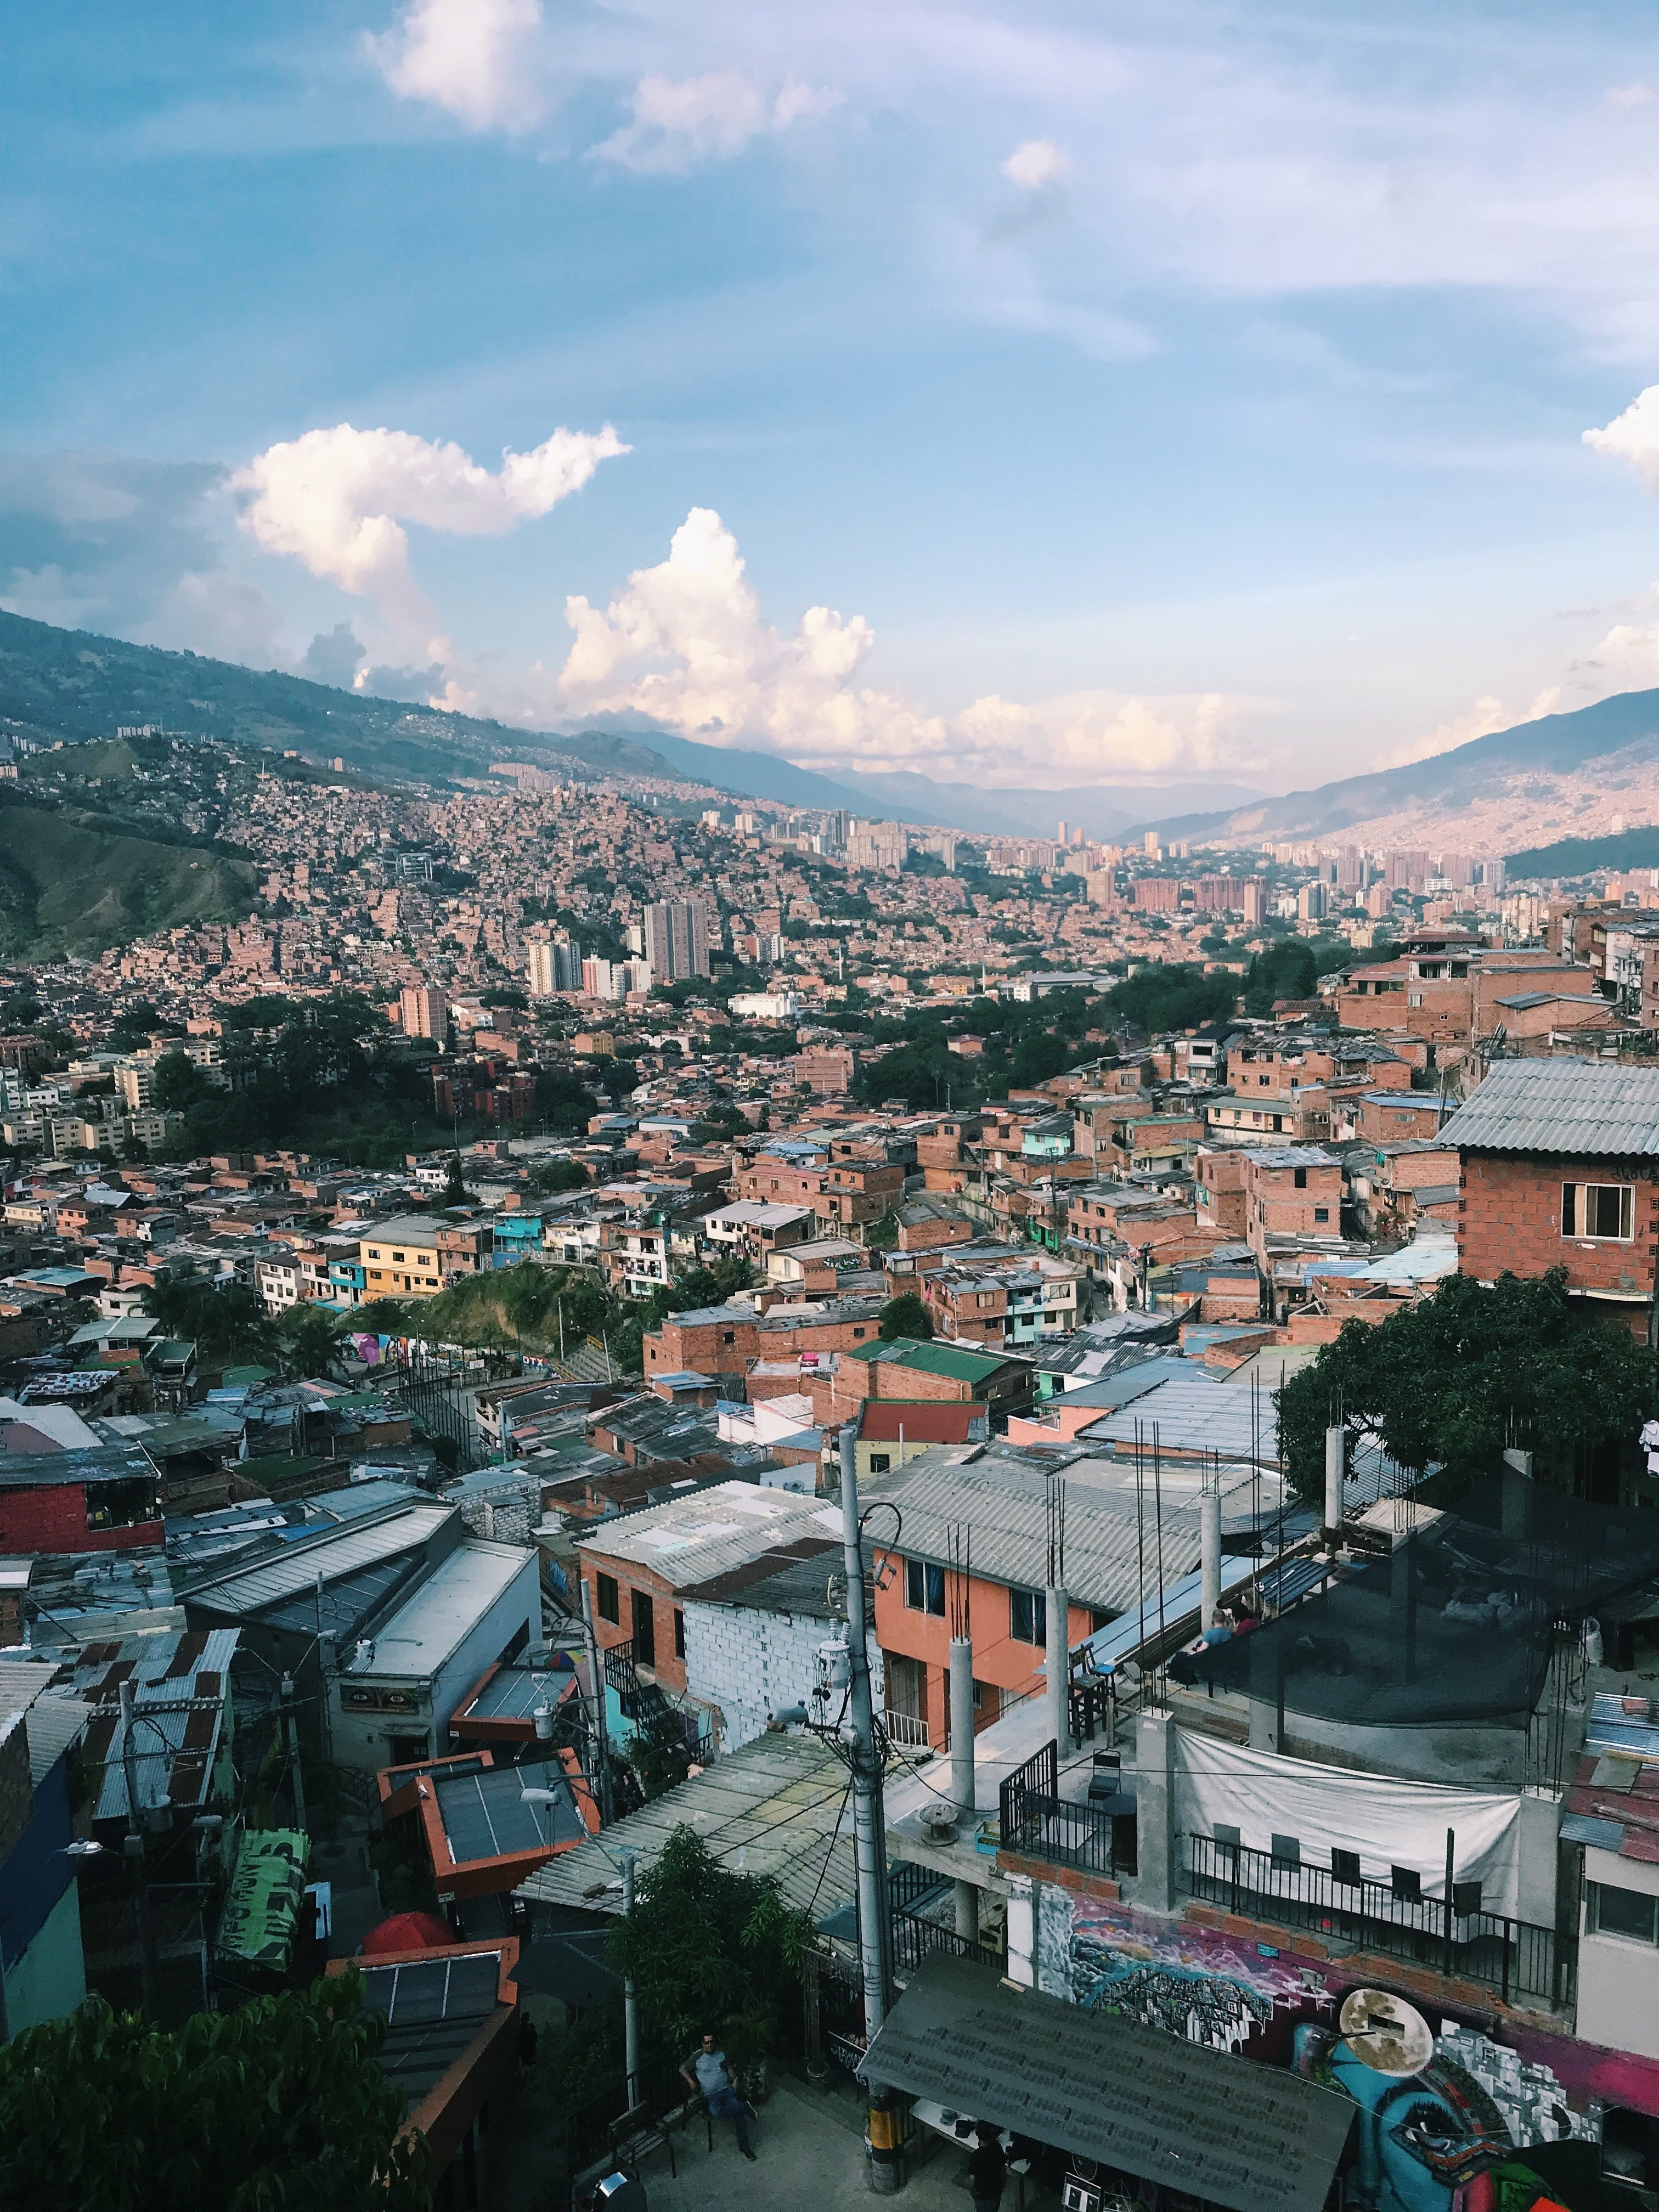 houses in Medellin, Colombia